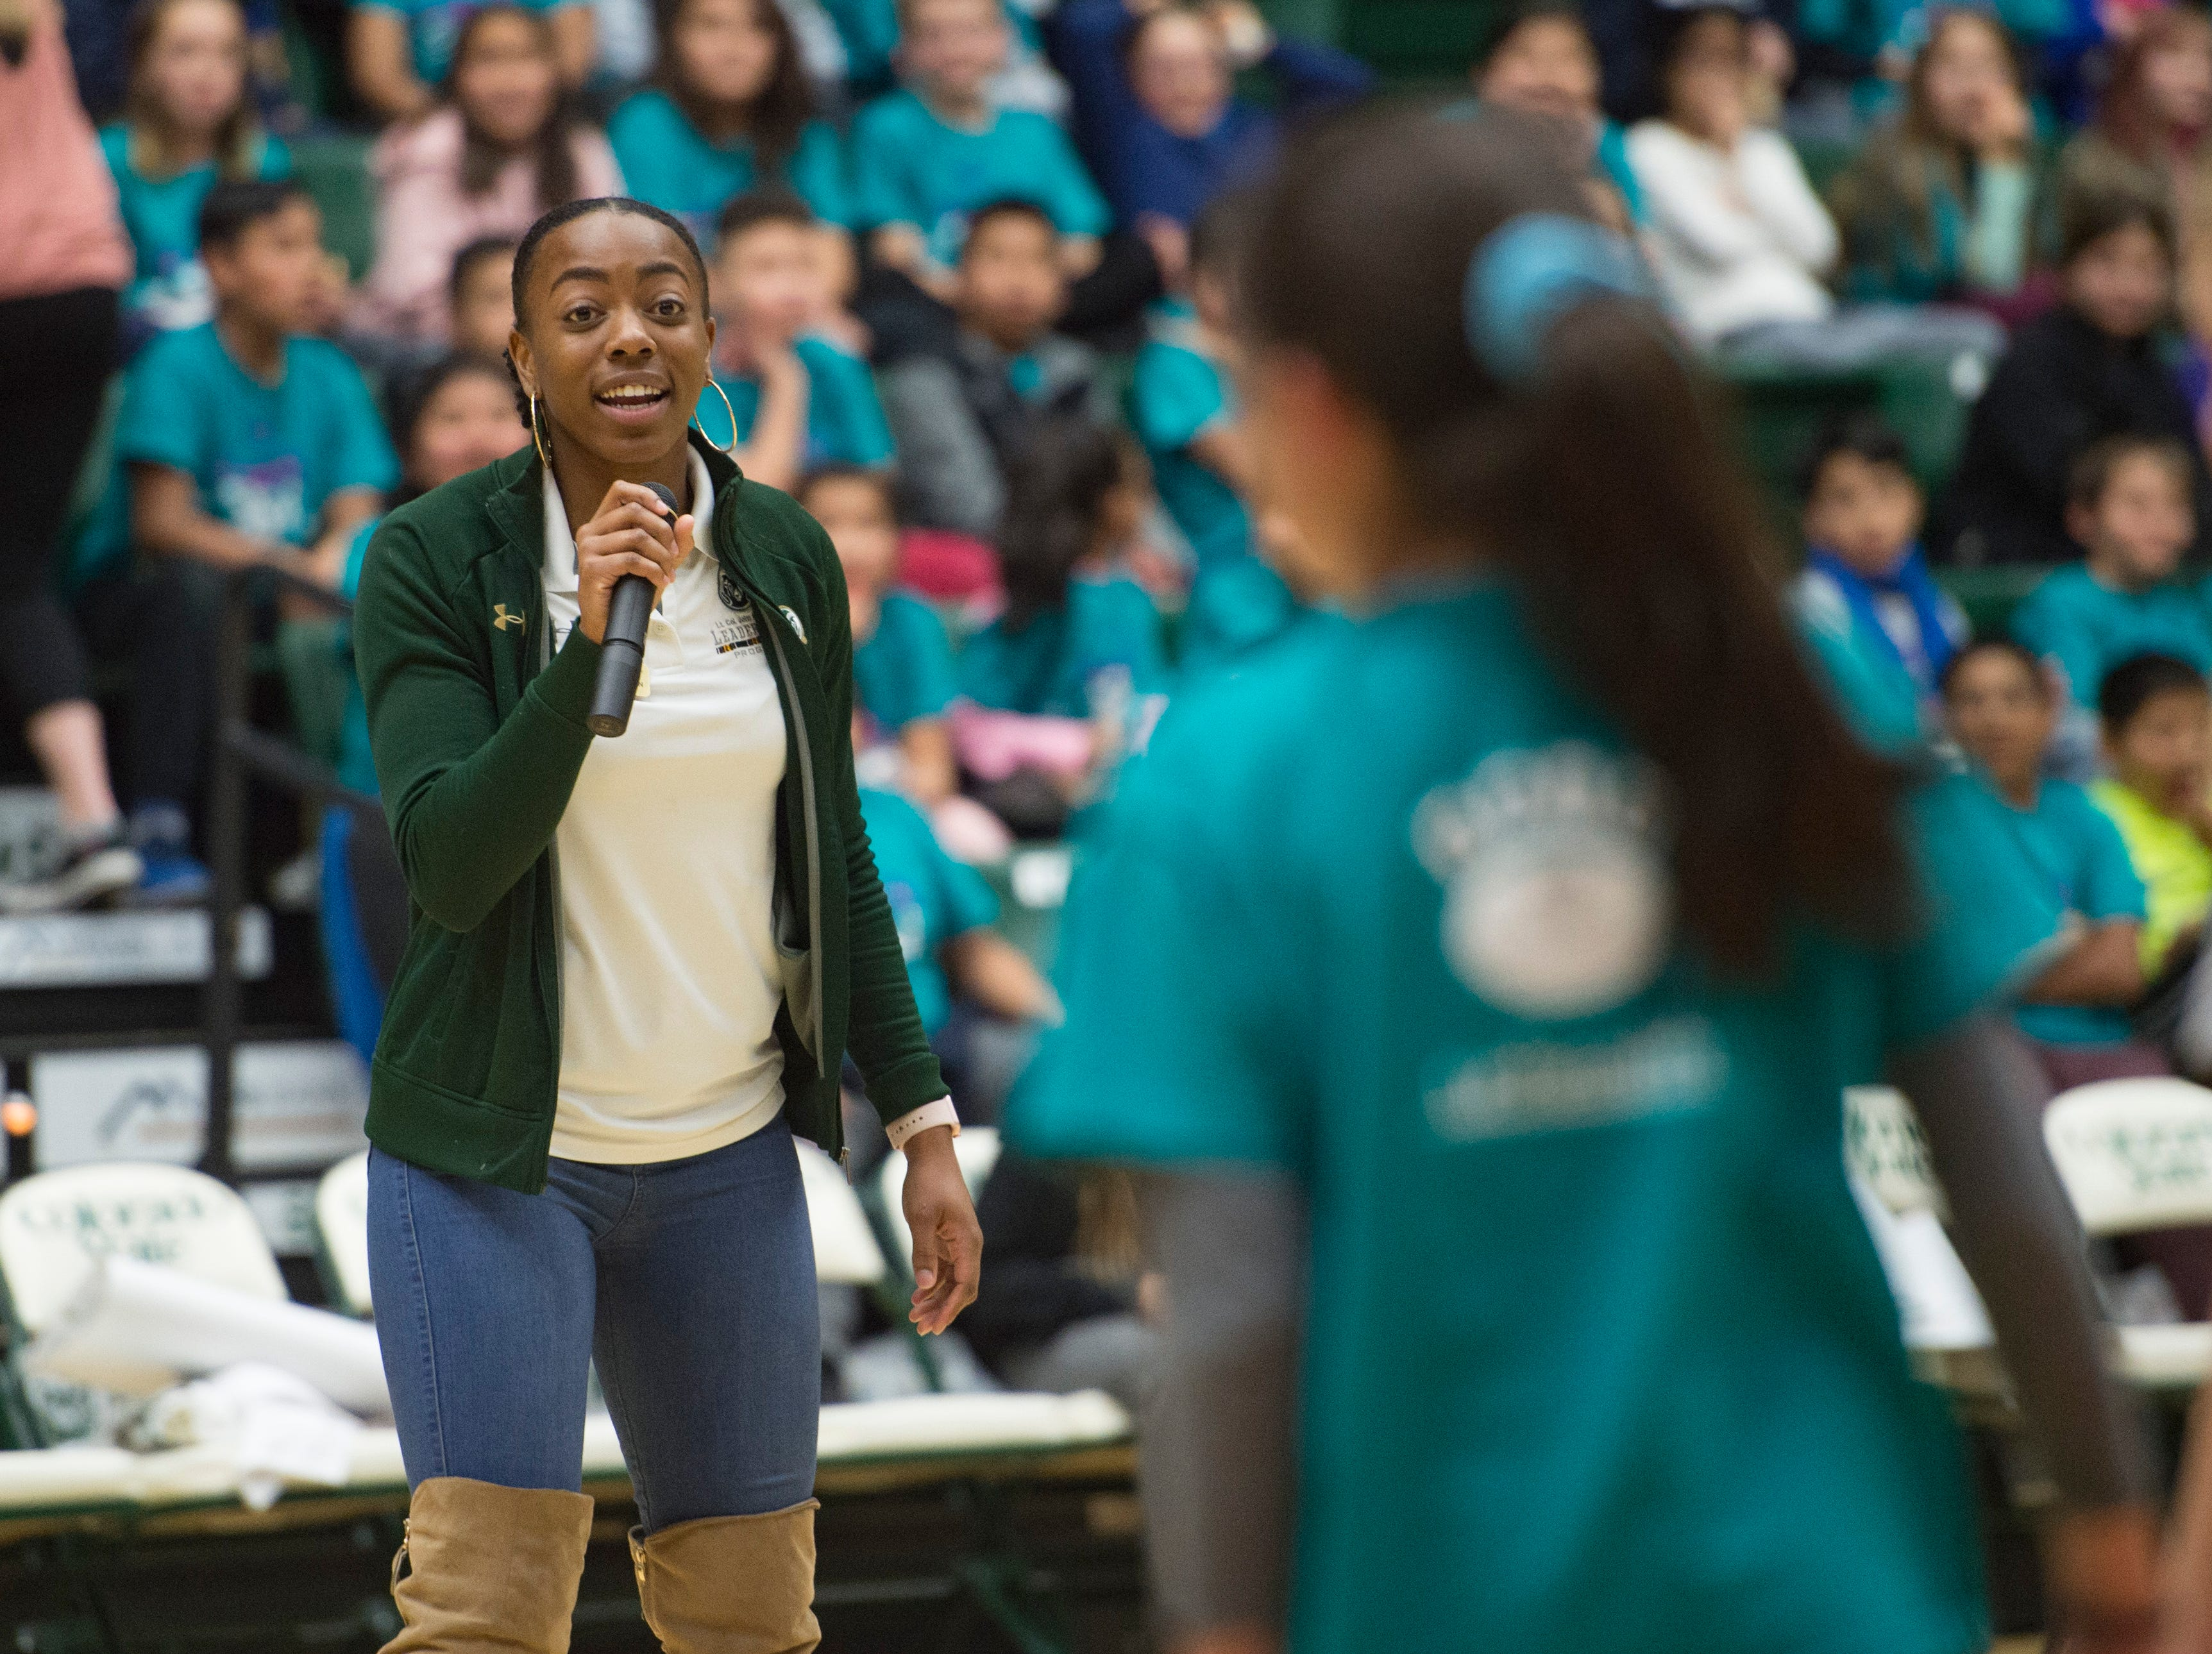 CSU Track's Lorenda Holston leads a group of Poudre School District students in a game of Simon Says during halftime of a women's basketball game against Northern Arizona at Moby Arena on Wednesday, December 5, 2018.